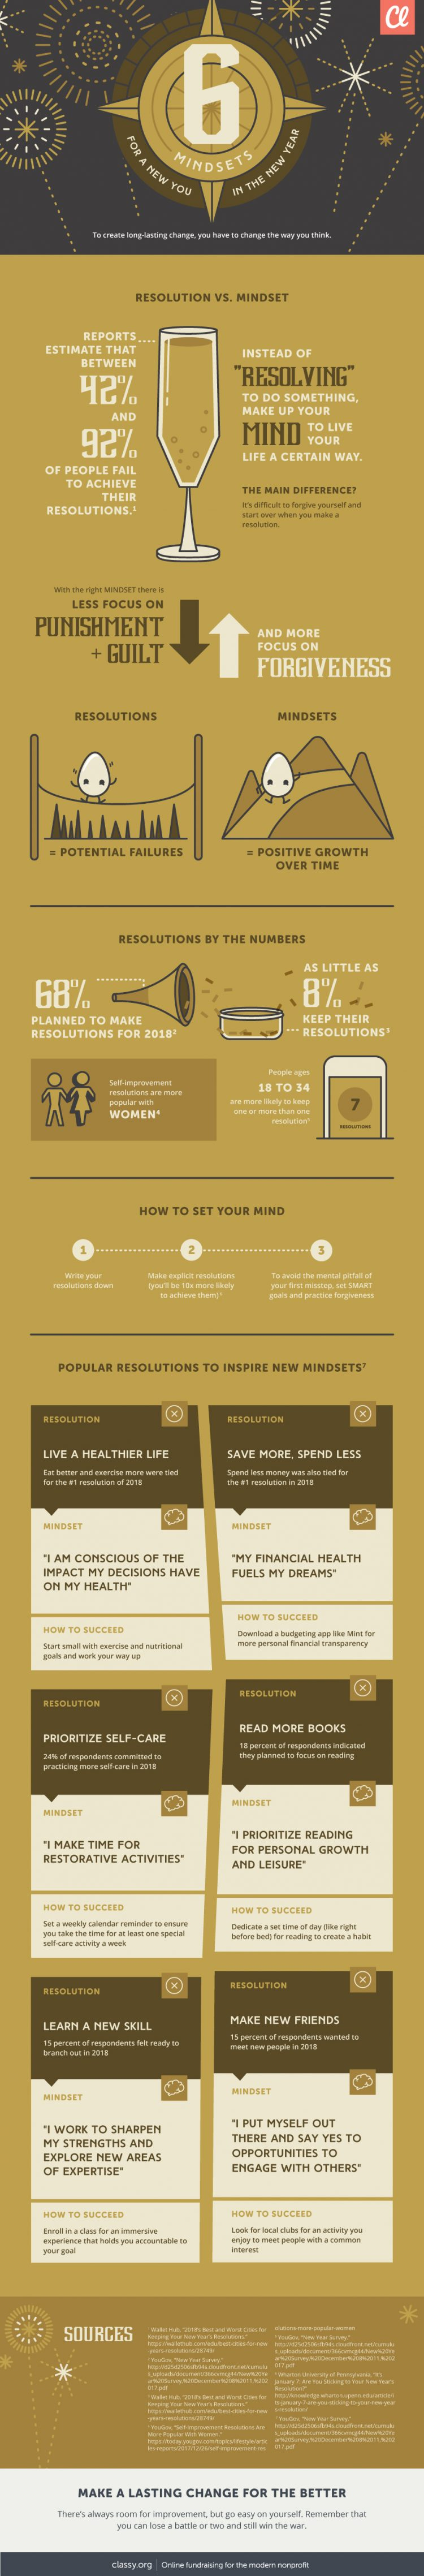 Infographic about adopting mindsets instead of new year's resolutions